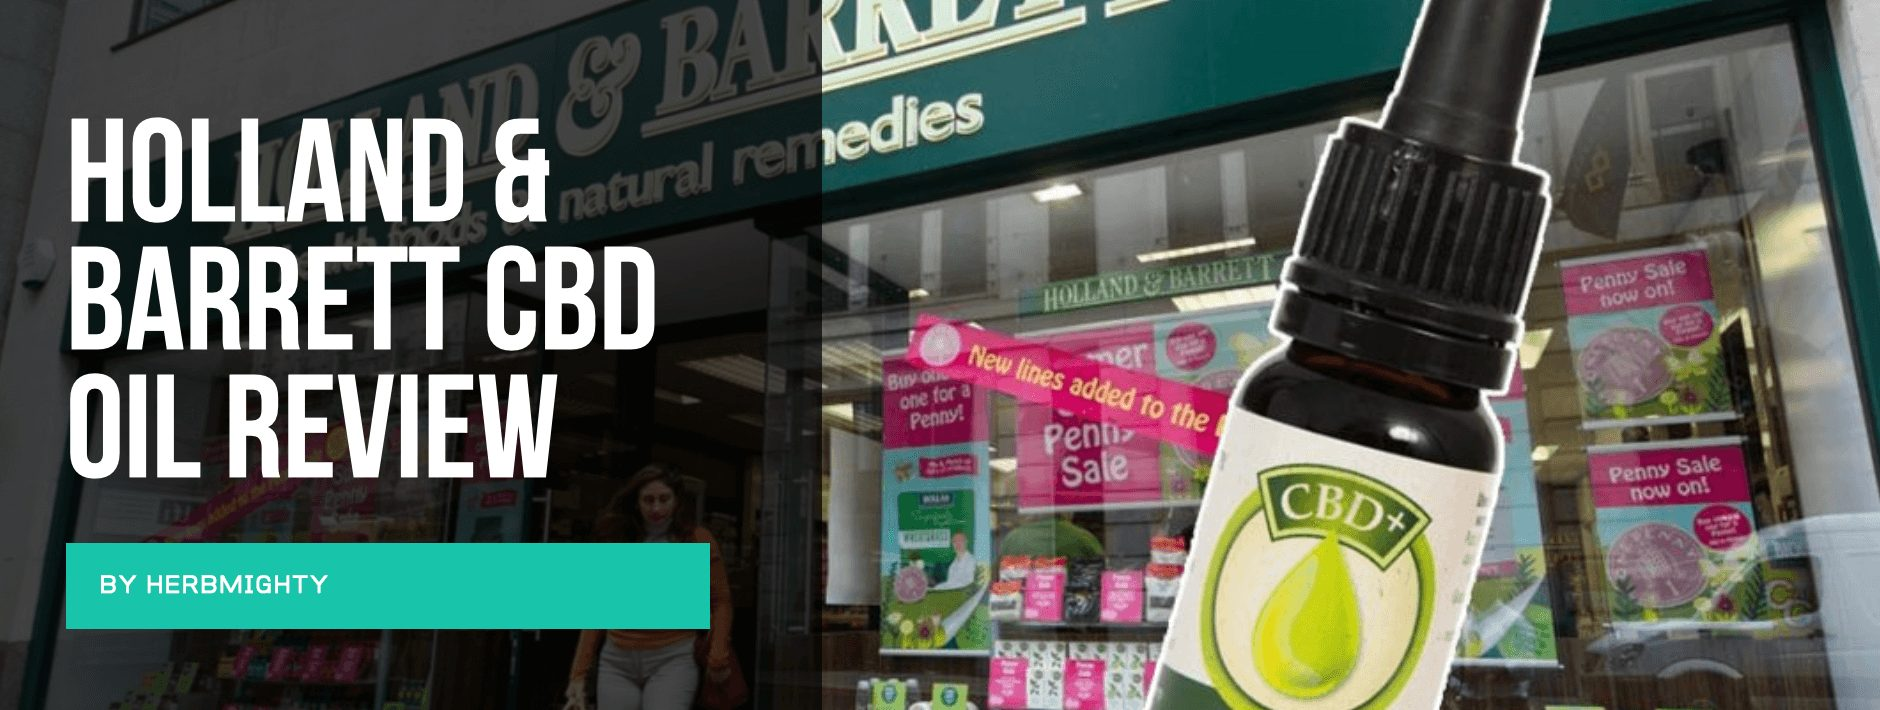 Holland and Barrett CBD Oil Review